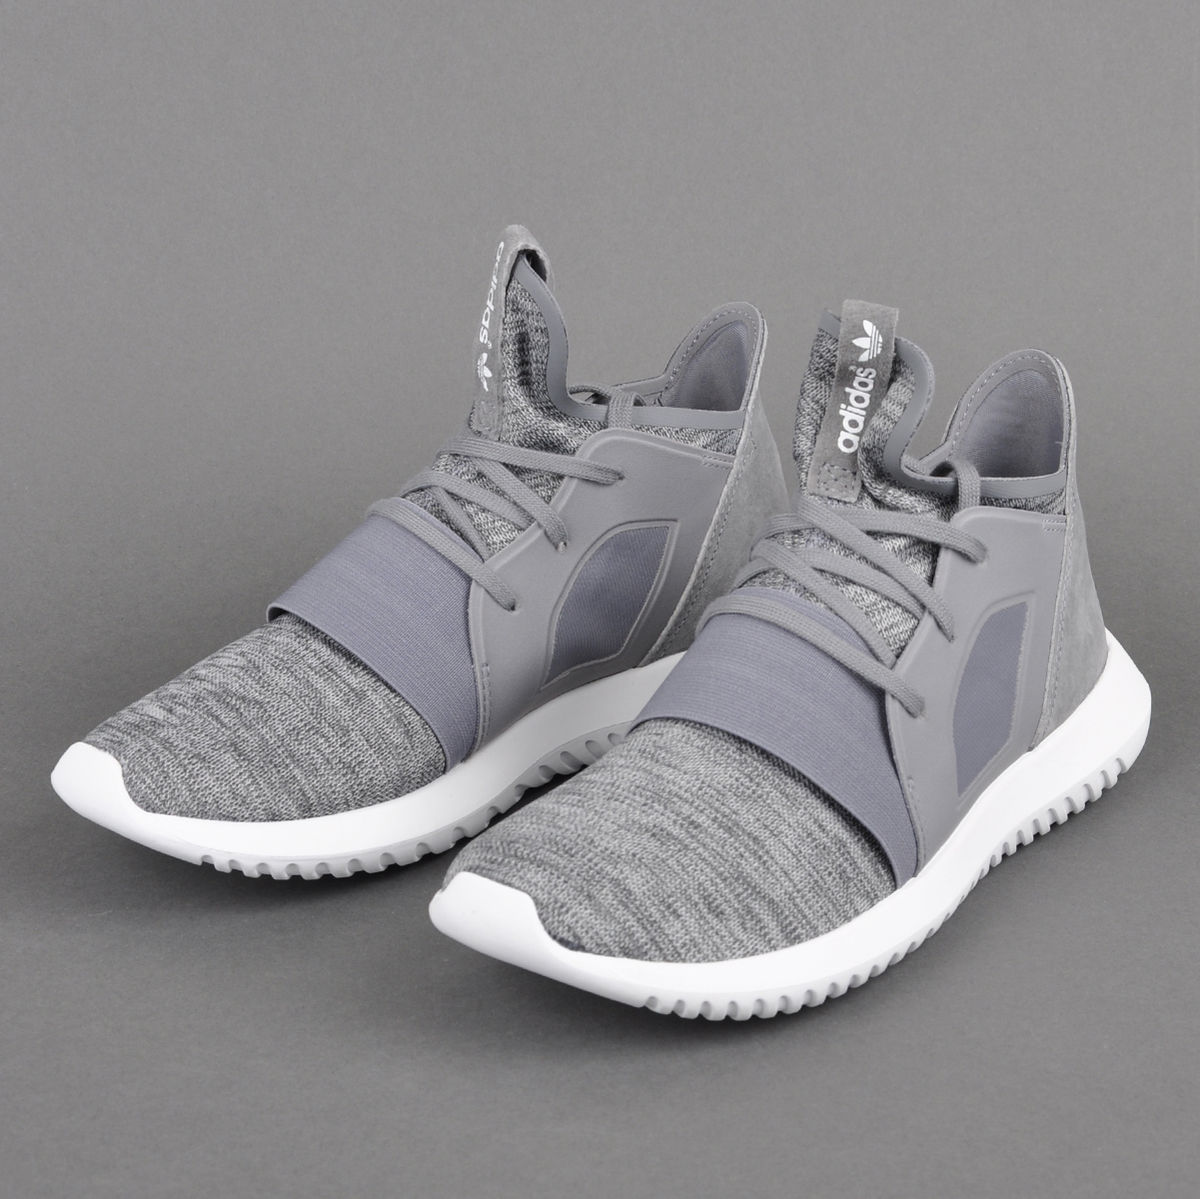 Low cost Men 's Tubular Radial Running Shoes Originals Women' s